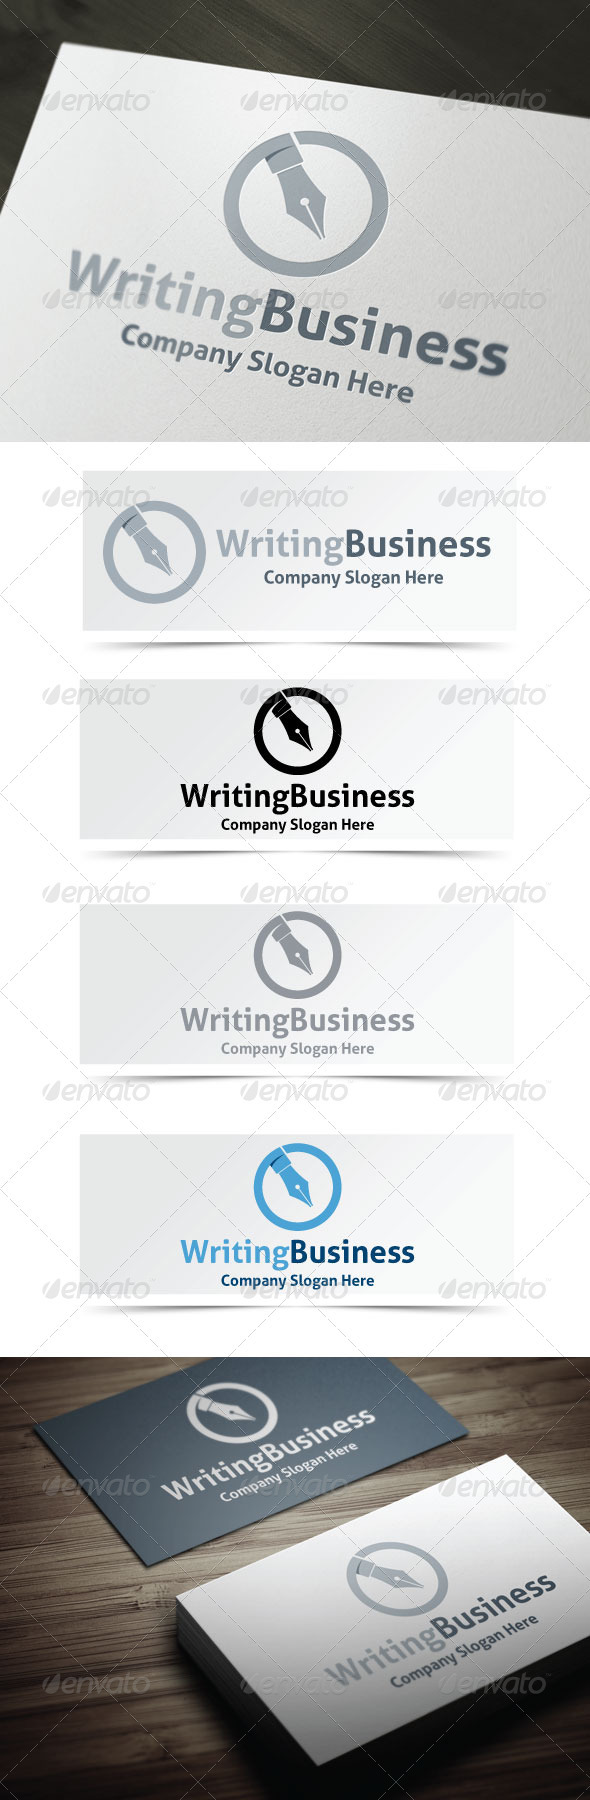 GraphicRiver Writing Business 3966150